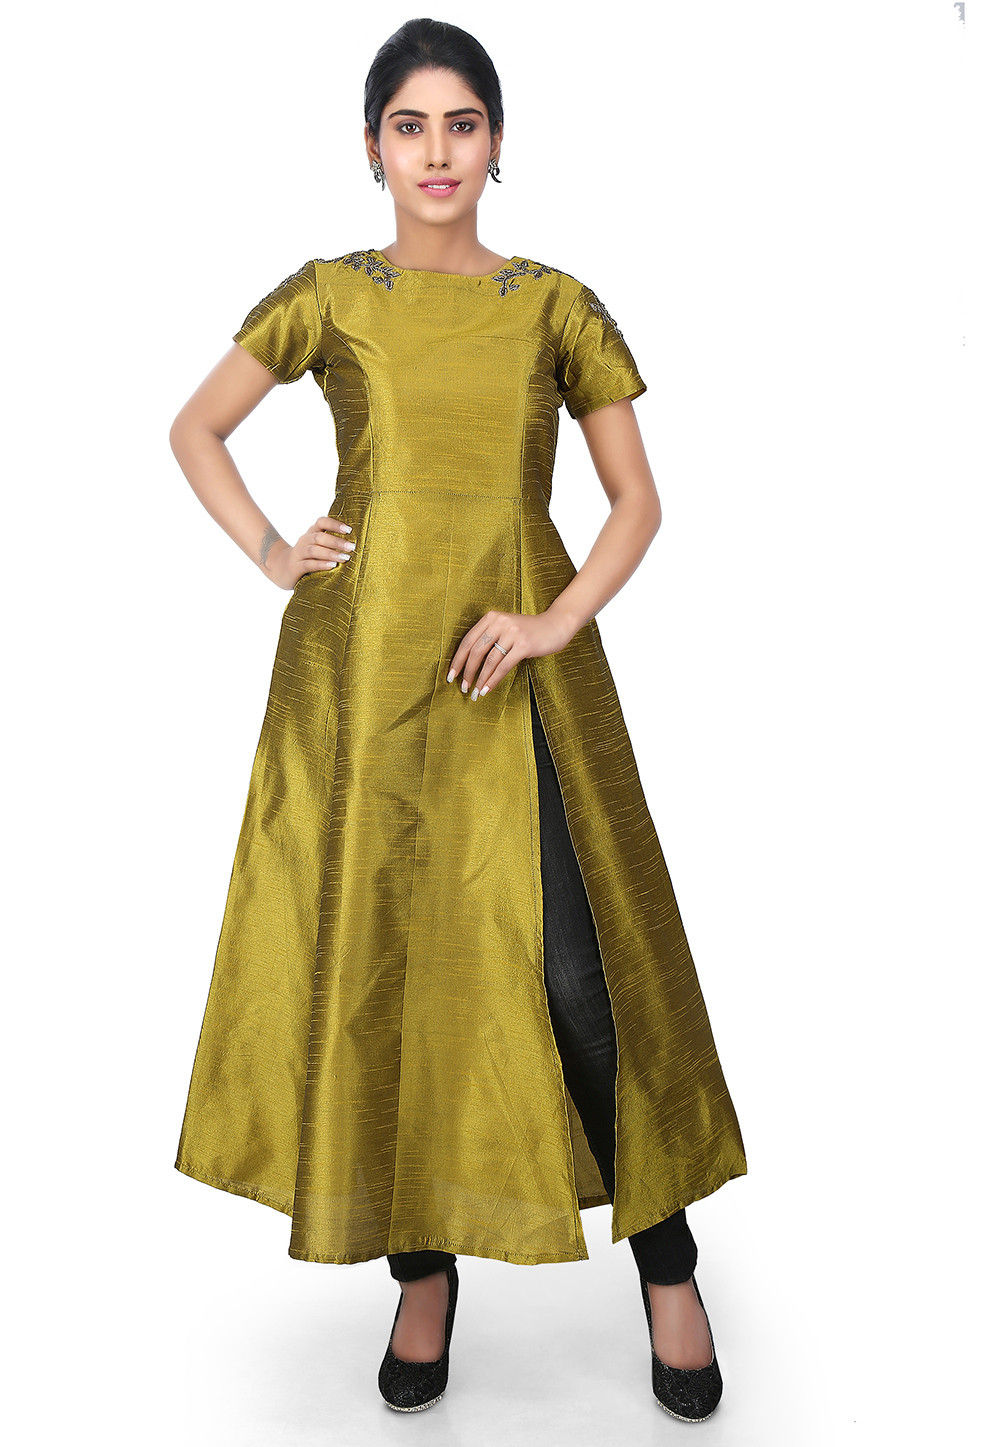 Hand Embroidered Dupion Silk Side Slit Kurta in Olive Green